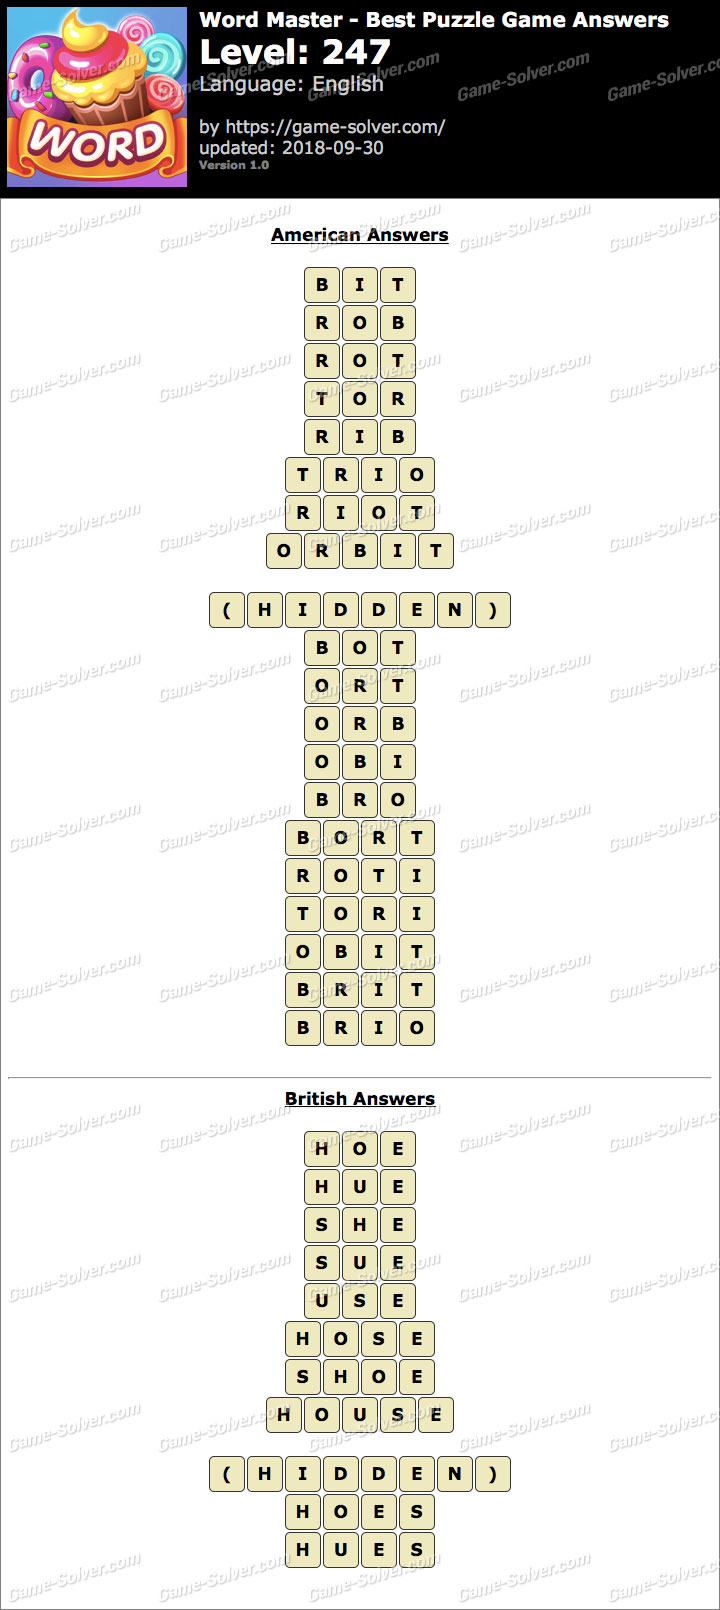 Word Master-Best Puzzle Game Level 247 Answers